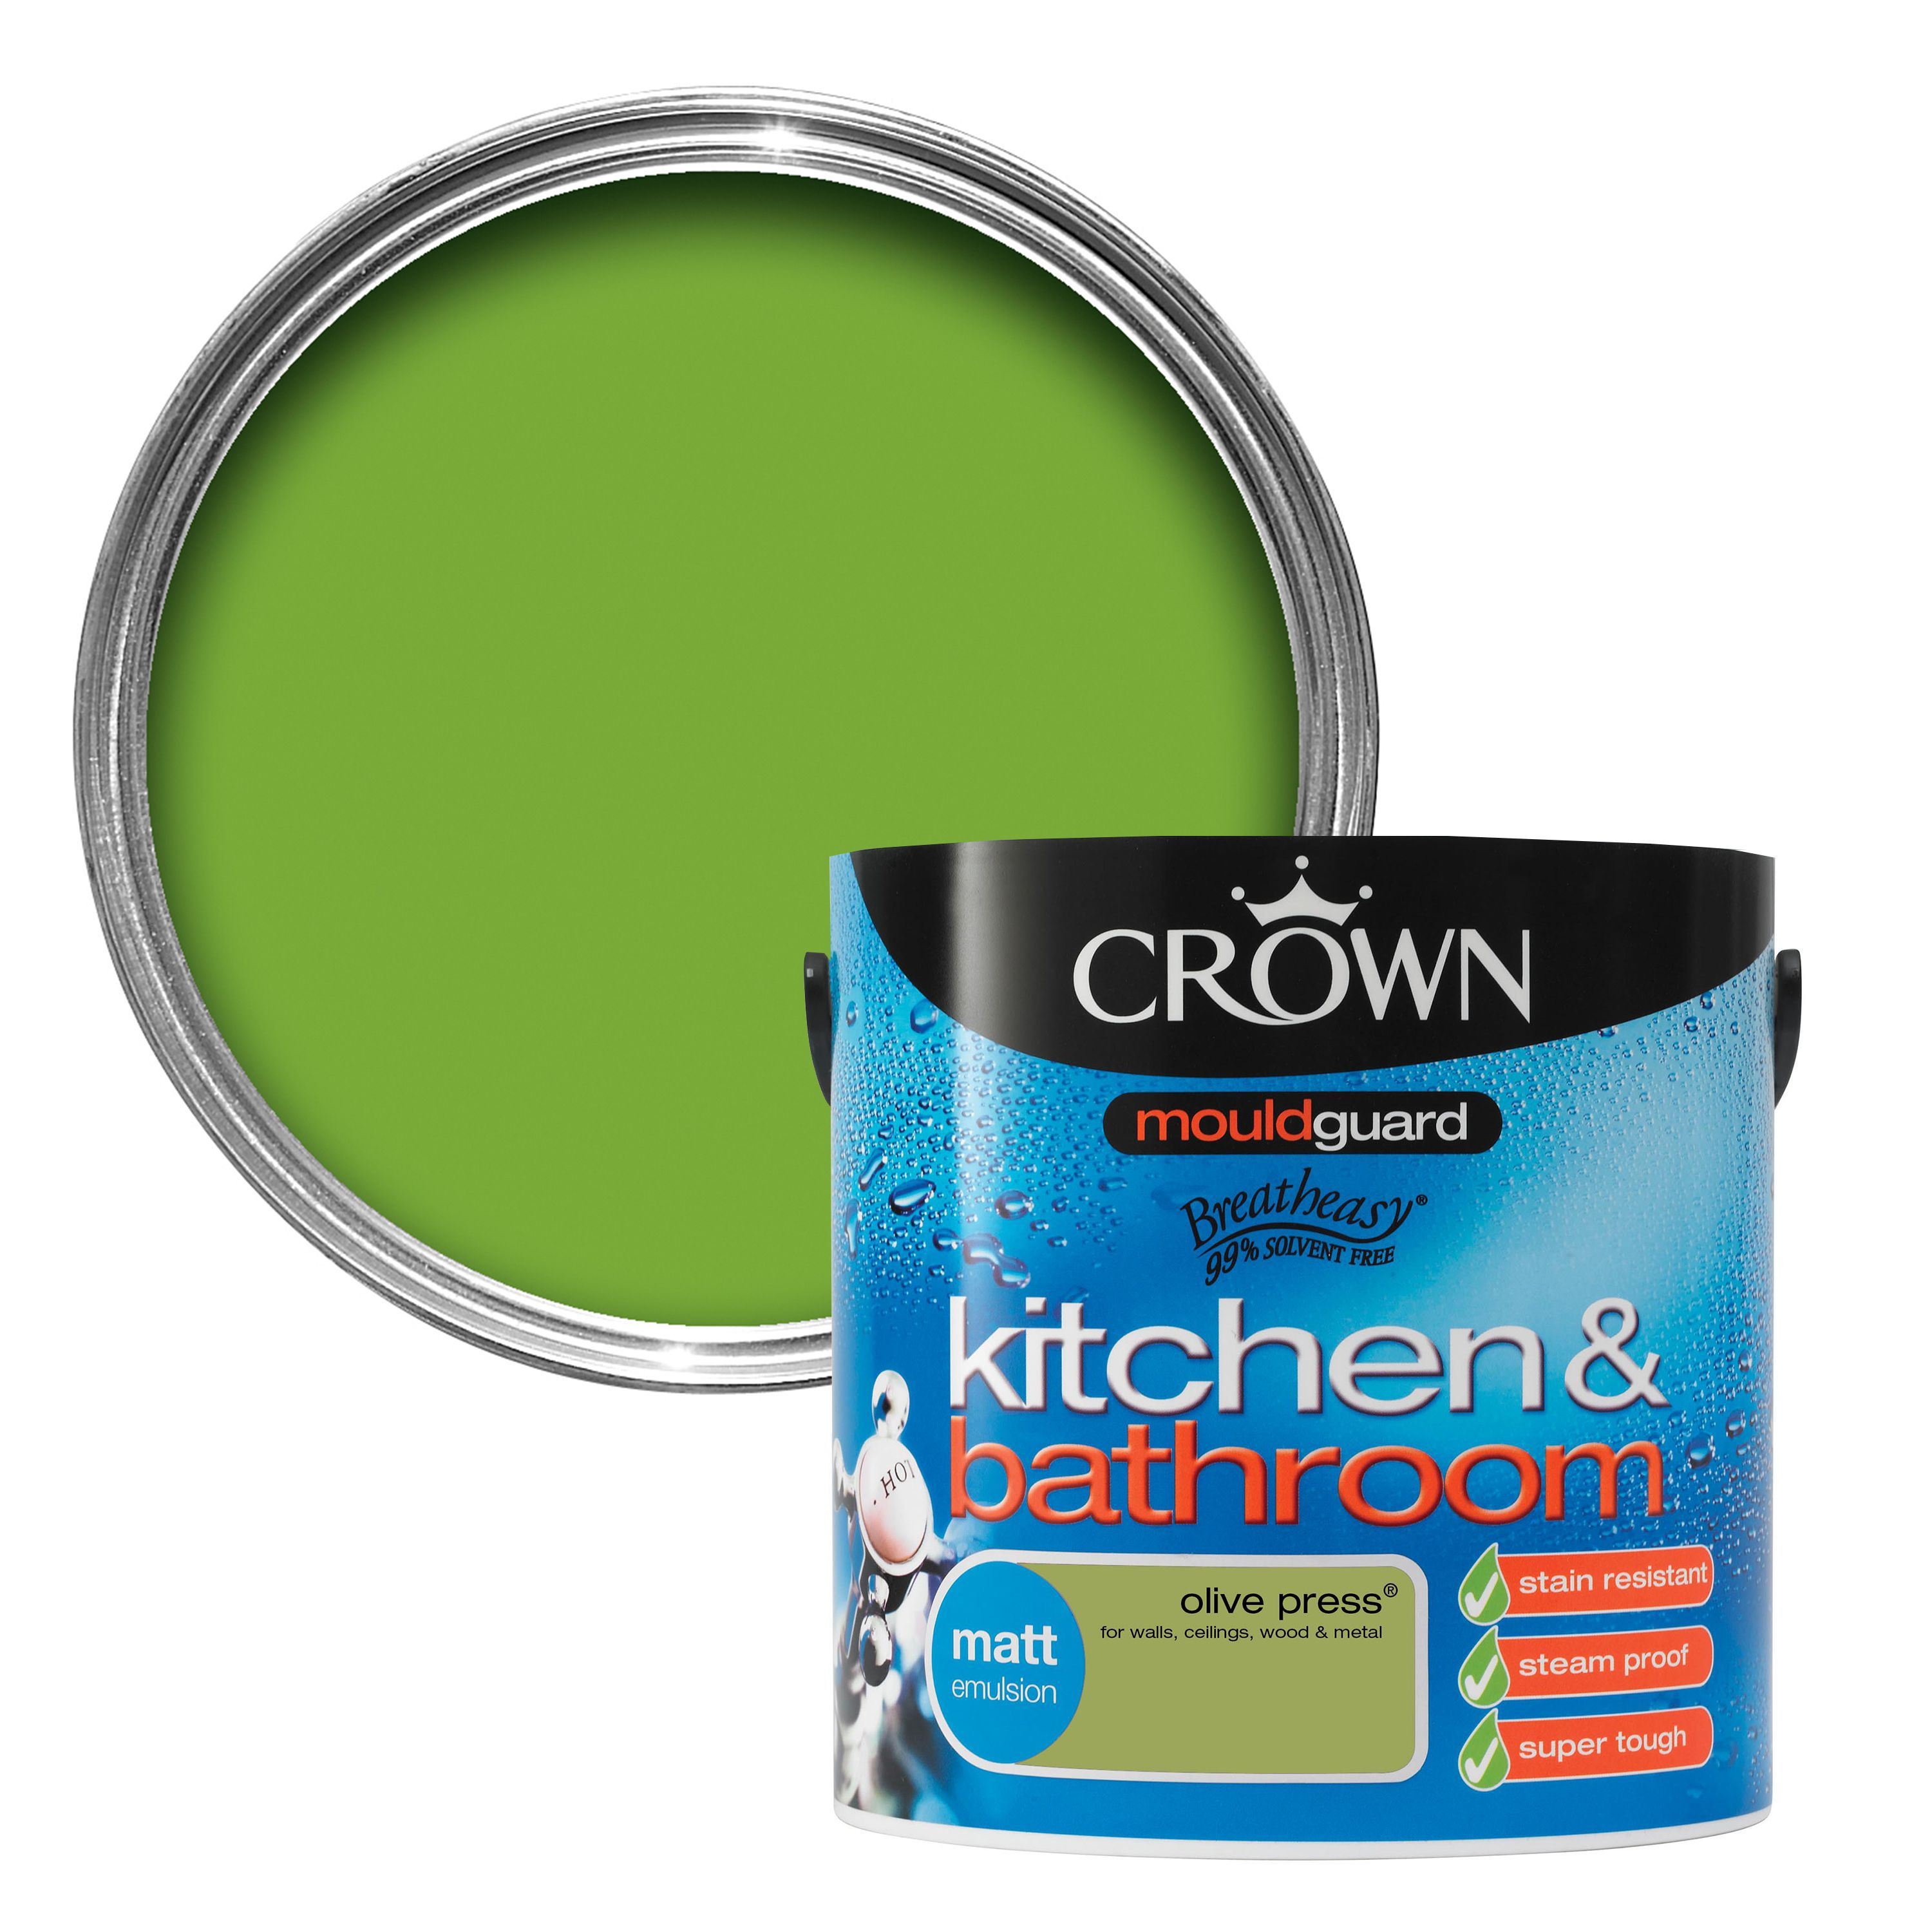 Crown Kitchen Bathroom Paint In Olive Press Green And: Crown Kitchen & Bathroom Olive Press Matt Emulsion Paint 2